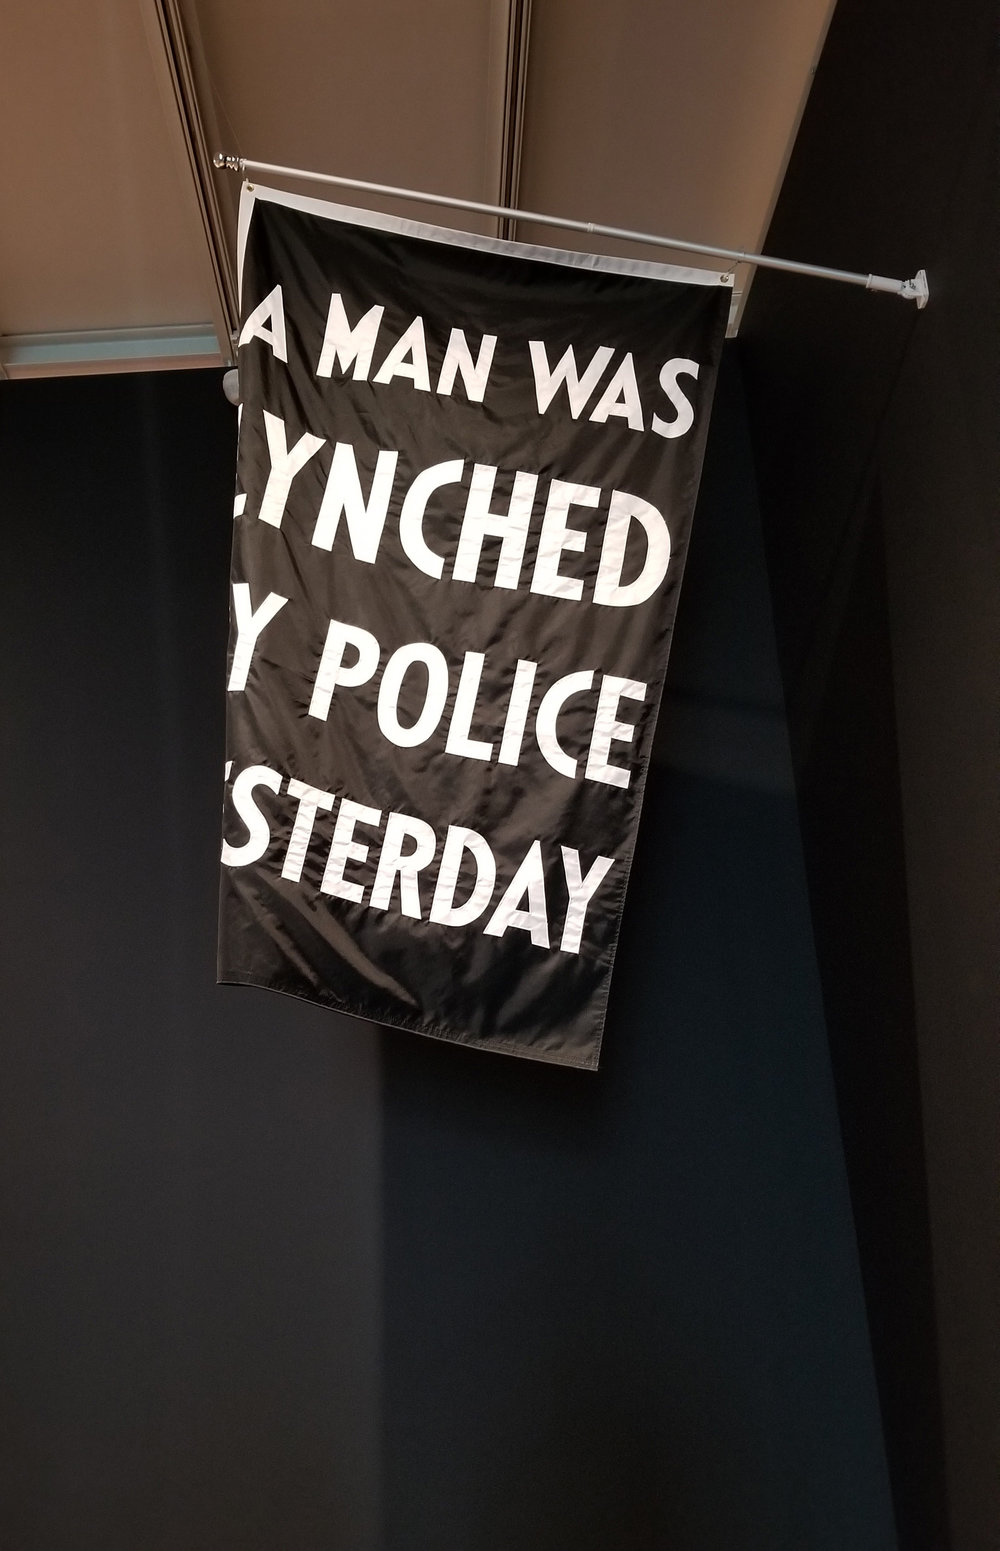 A Man Was Lynched By Police Yesterday,  by Dread Scott. 2015. Photo by: Jill O'Connor